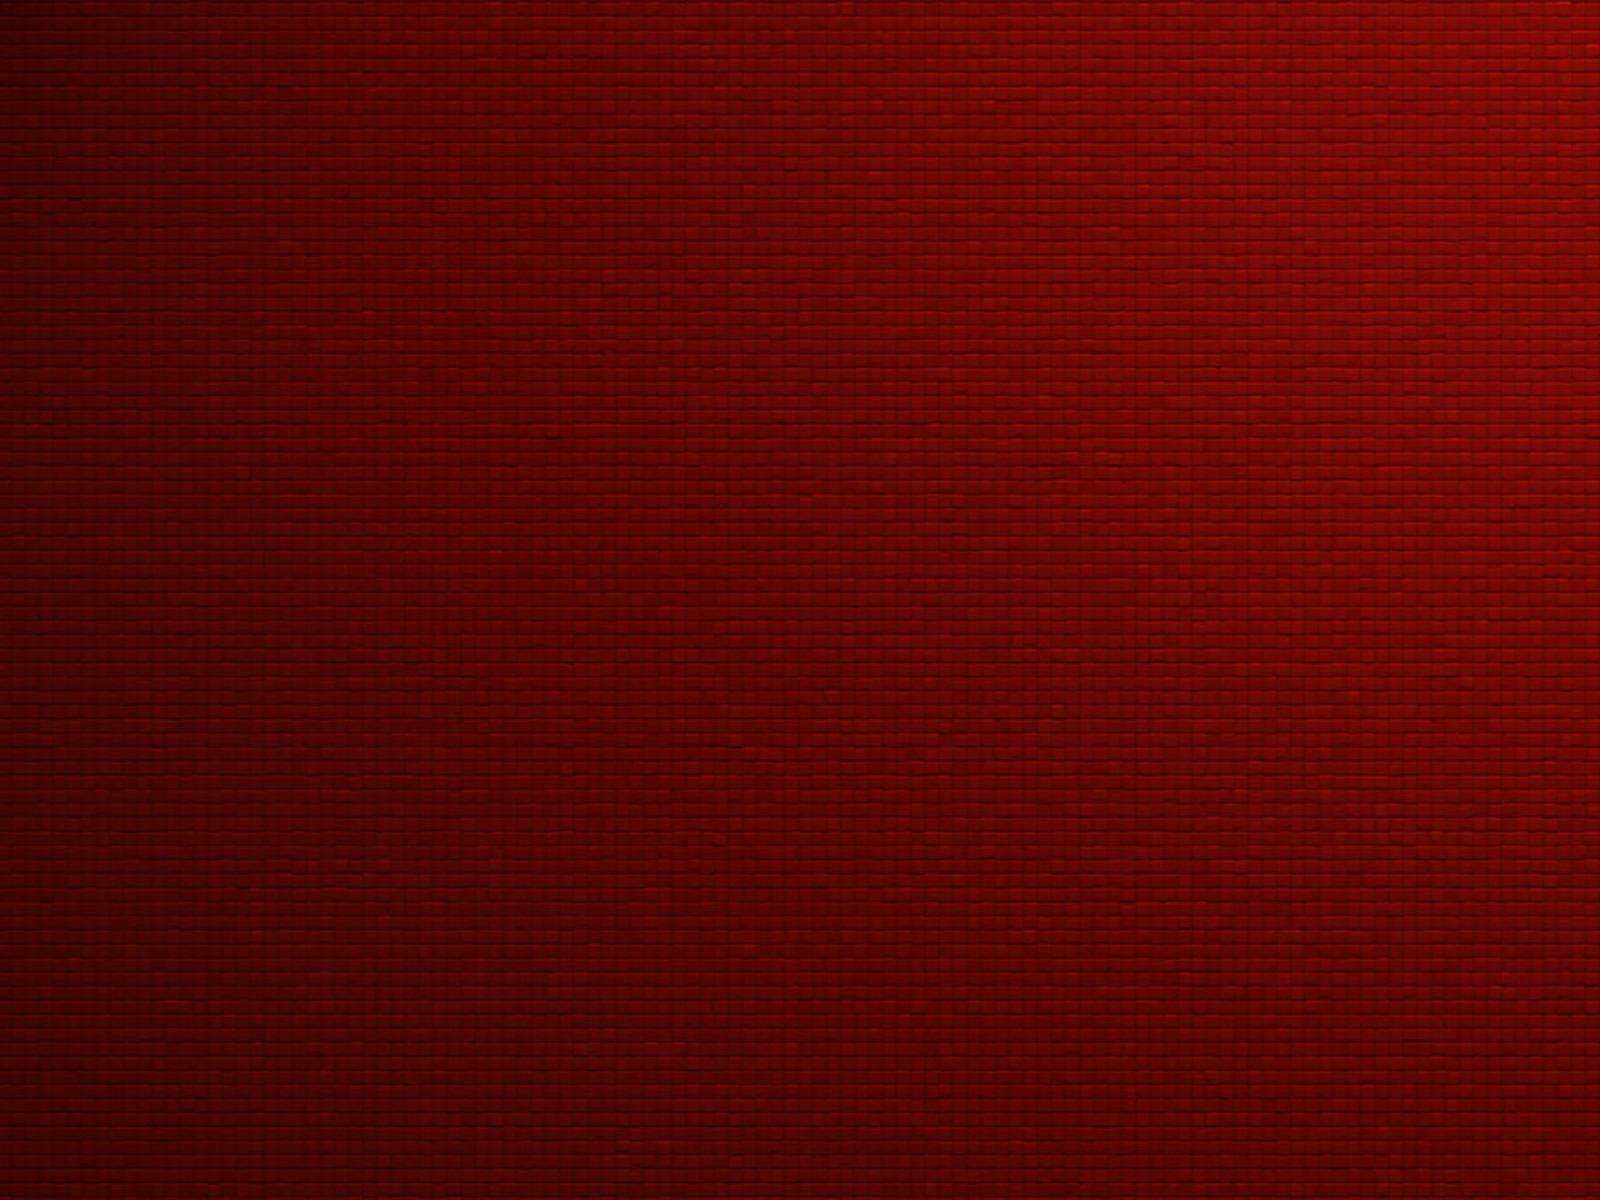 Red Desktop Wallpaper Wallpaper